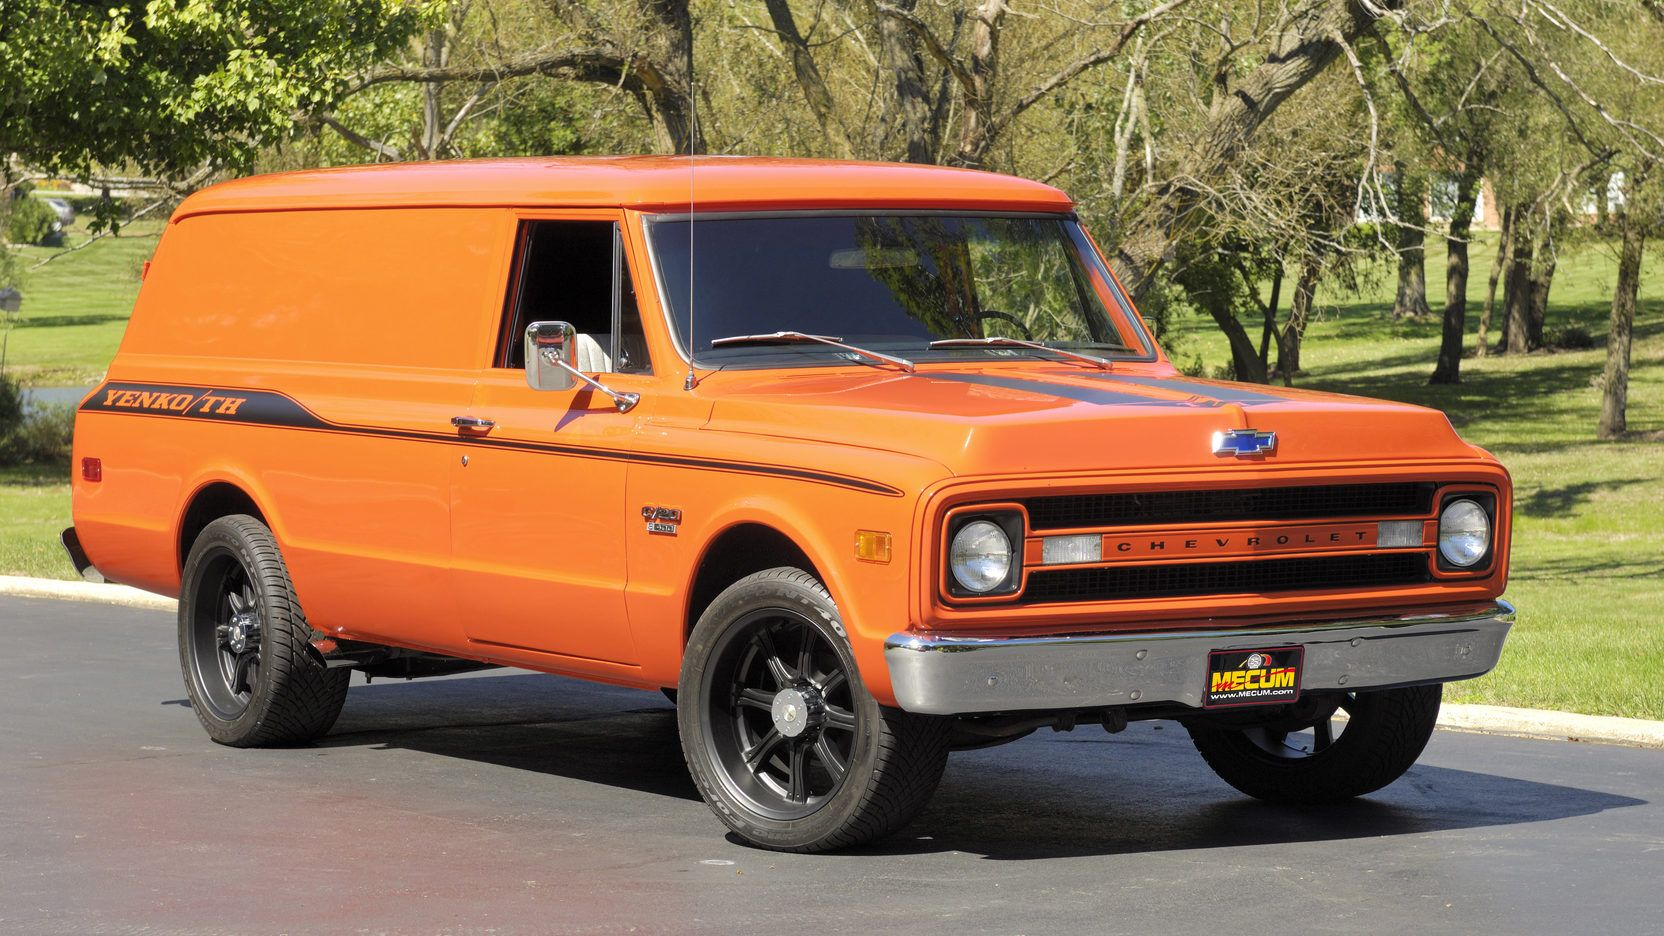 1970 Chevrolet Panel Delivery Truck 1 Print Image Panel